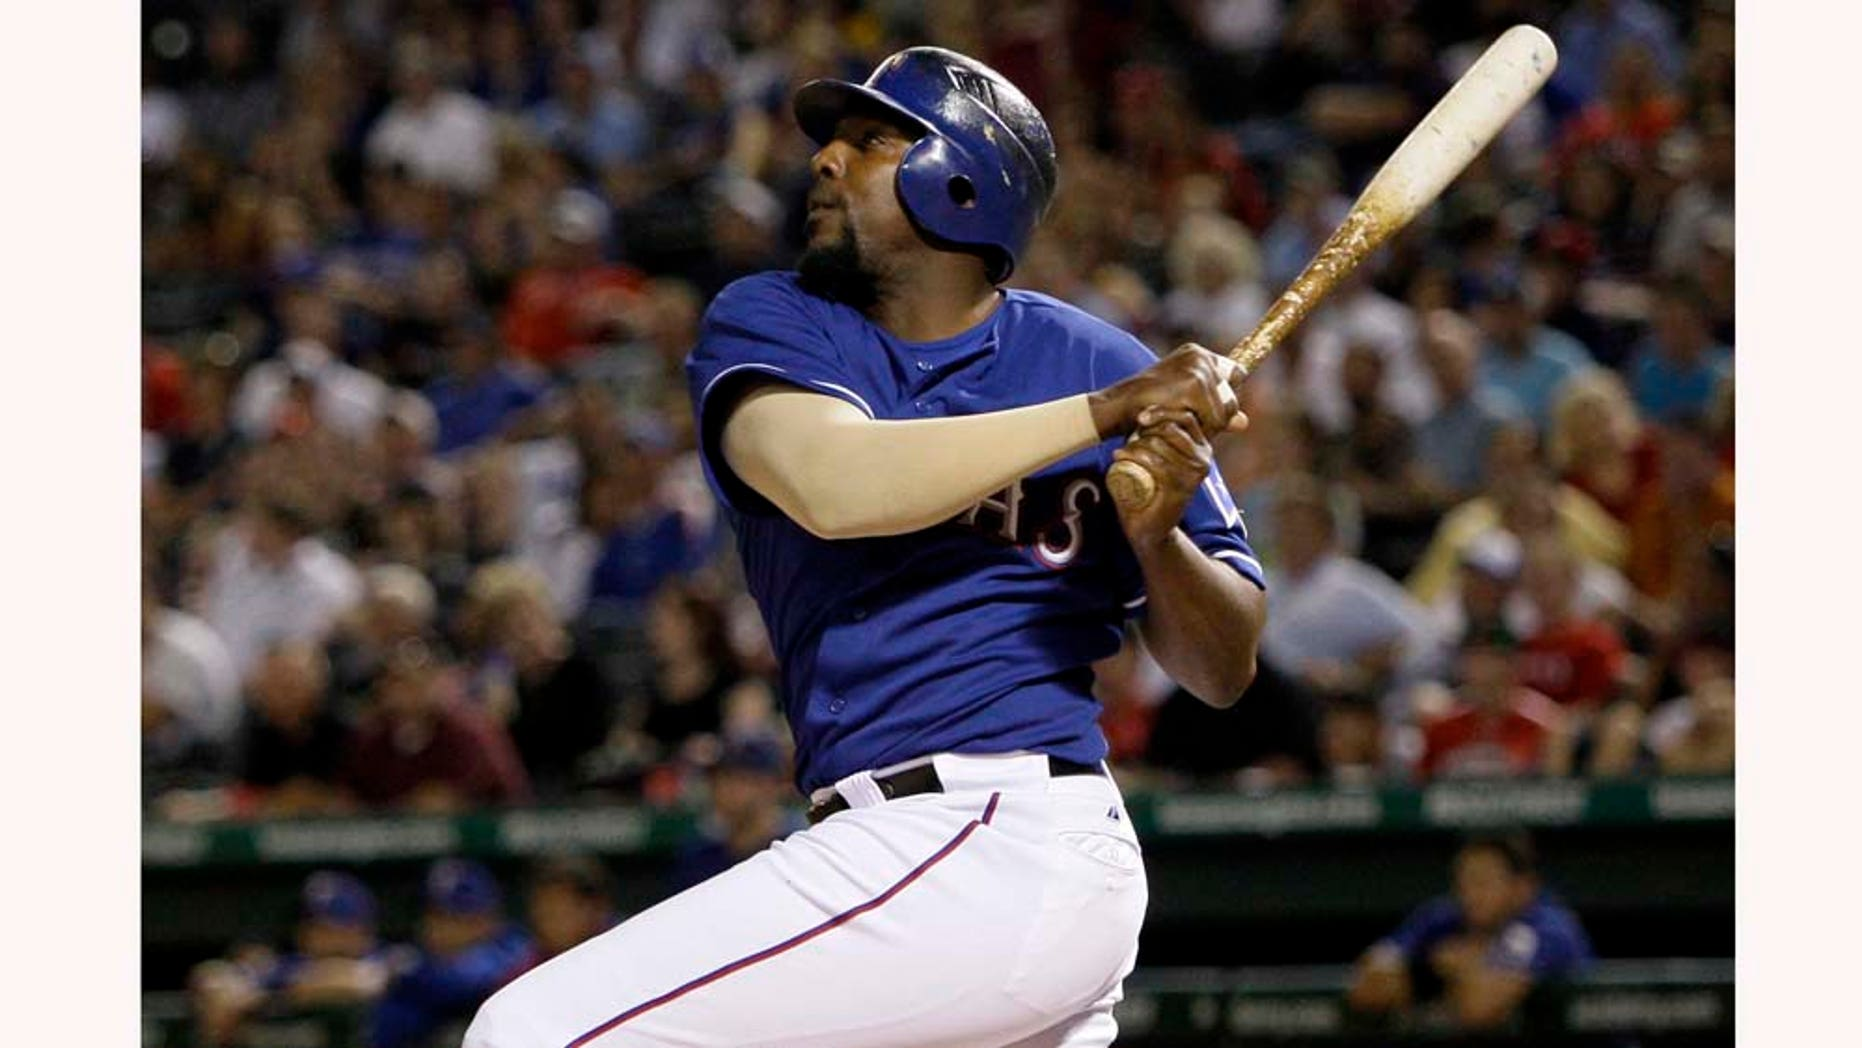 FILE - In this May 6, 2010, file photo, Texas Rangers' Vladimir Guerrero looks on after hitting a two-run home run off Kansas City Royals' Josh Rupe in the sixth inning of a baseball game in Arlington, Texas. A person with knowledge of the situation says free agent slugger Guerrero has agreed to one-year contract with the Baltimore Orioles. The person spoke Friday, Feb. 4, 2011, to The Associated Press on the condition of anonymity because the deal will not be completed until Guerrero passes a physical. (AP Photo/Tony Gutierrez, File)